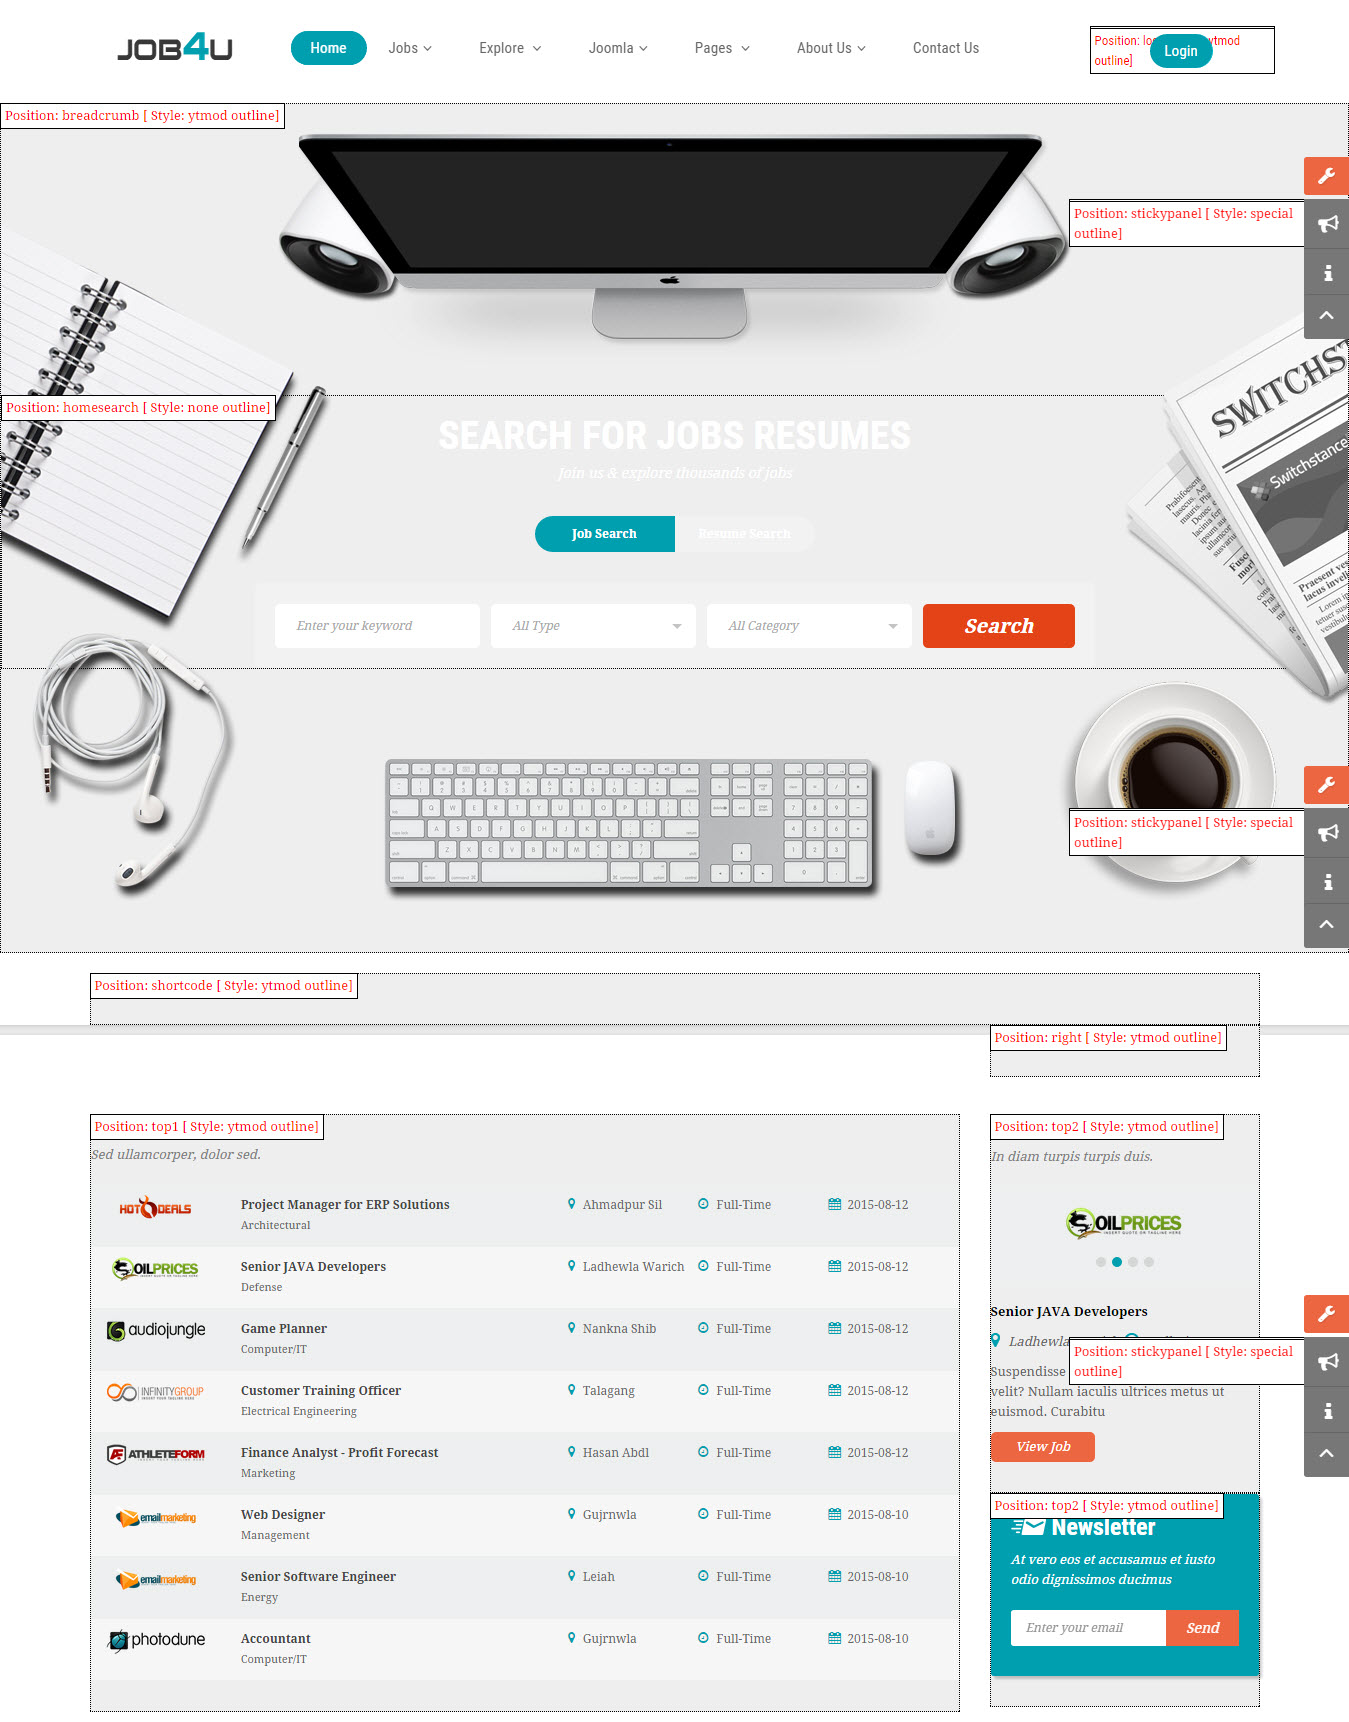 Responsive Joomla Job Board Template - SJ Job4u